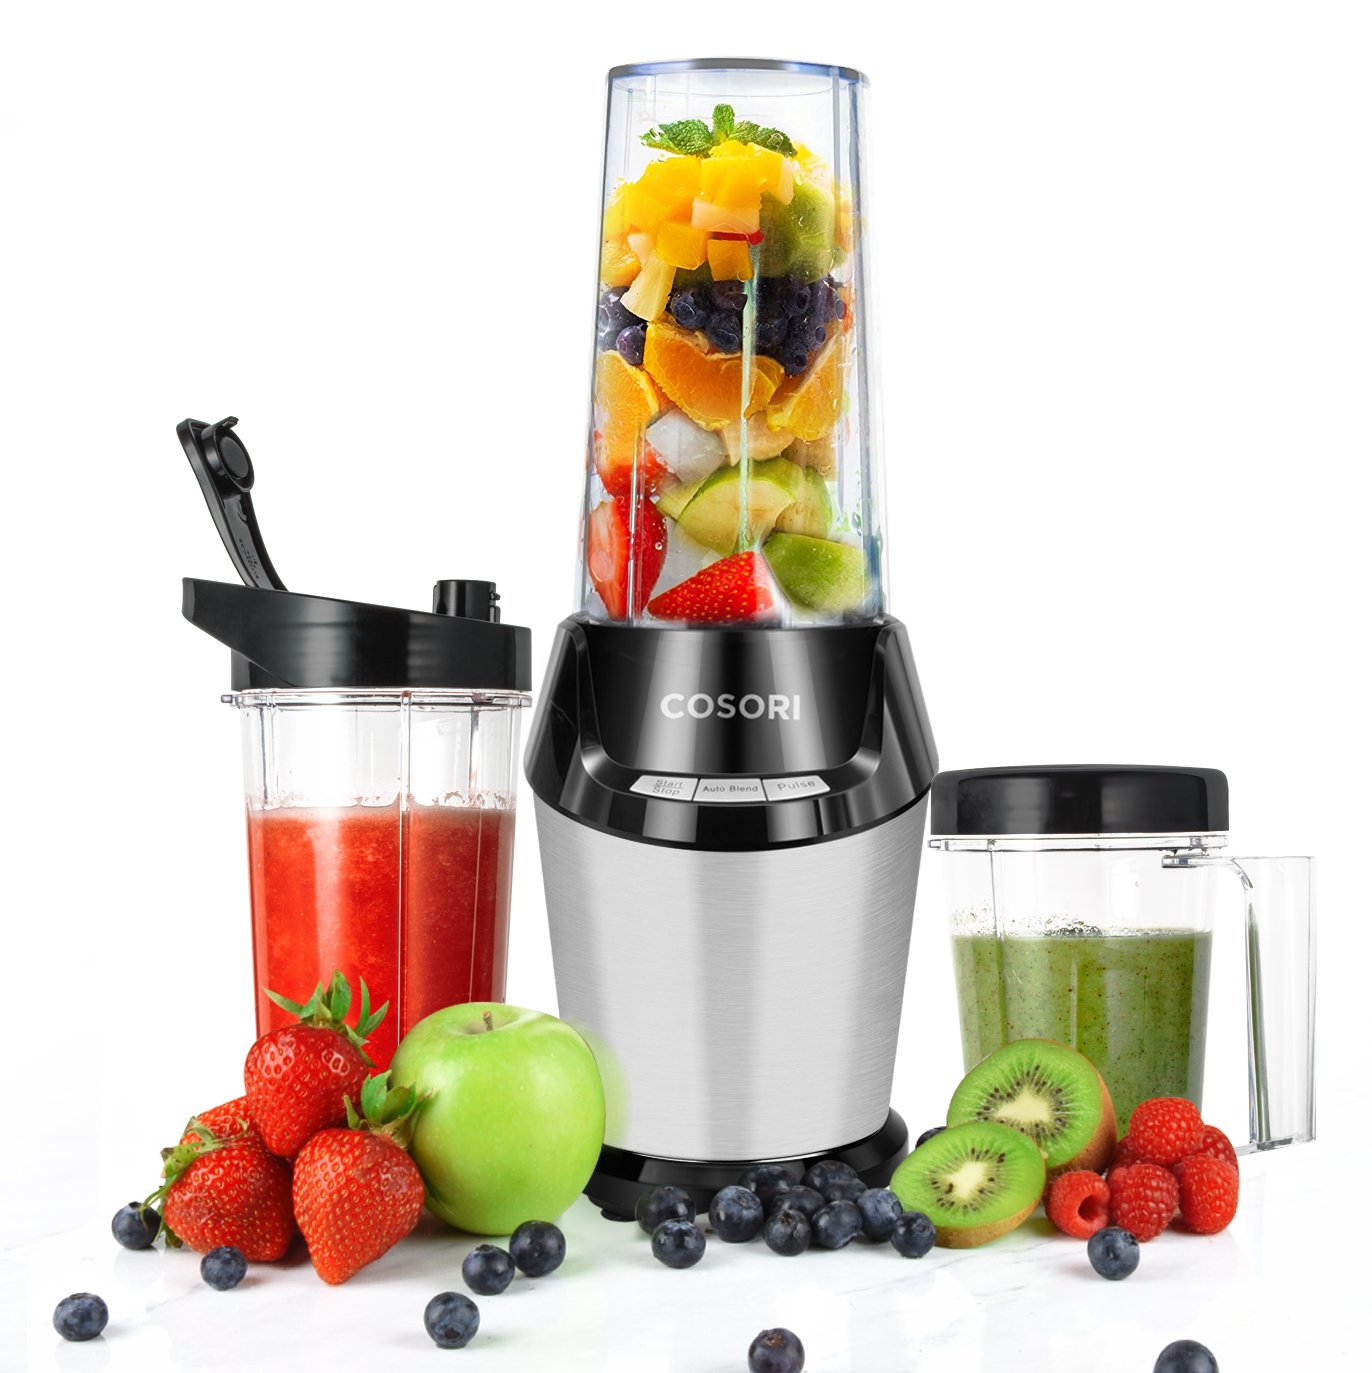 COSORI Smoothie Blender, Smoothie Blender for Shakes and Smoothies, Personal Blender Maker Single Serve with Cleaning Brush, Three Large Tritan Travel Cups(2x32 oz and 1x24 oz)